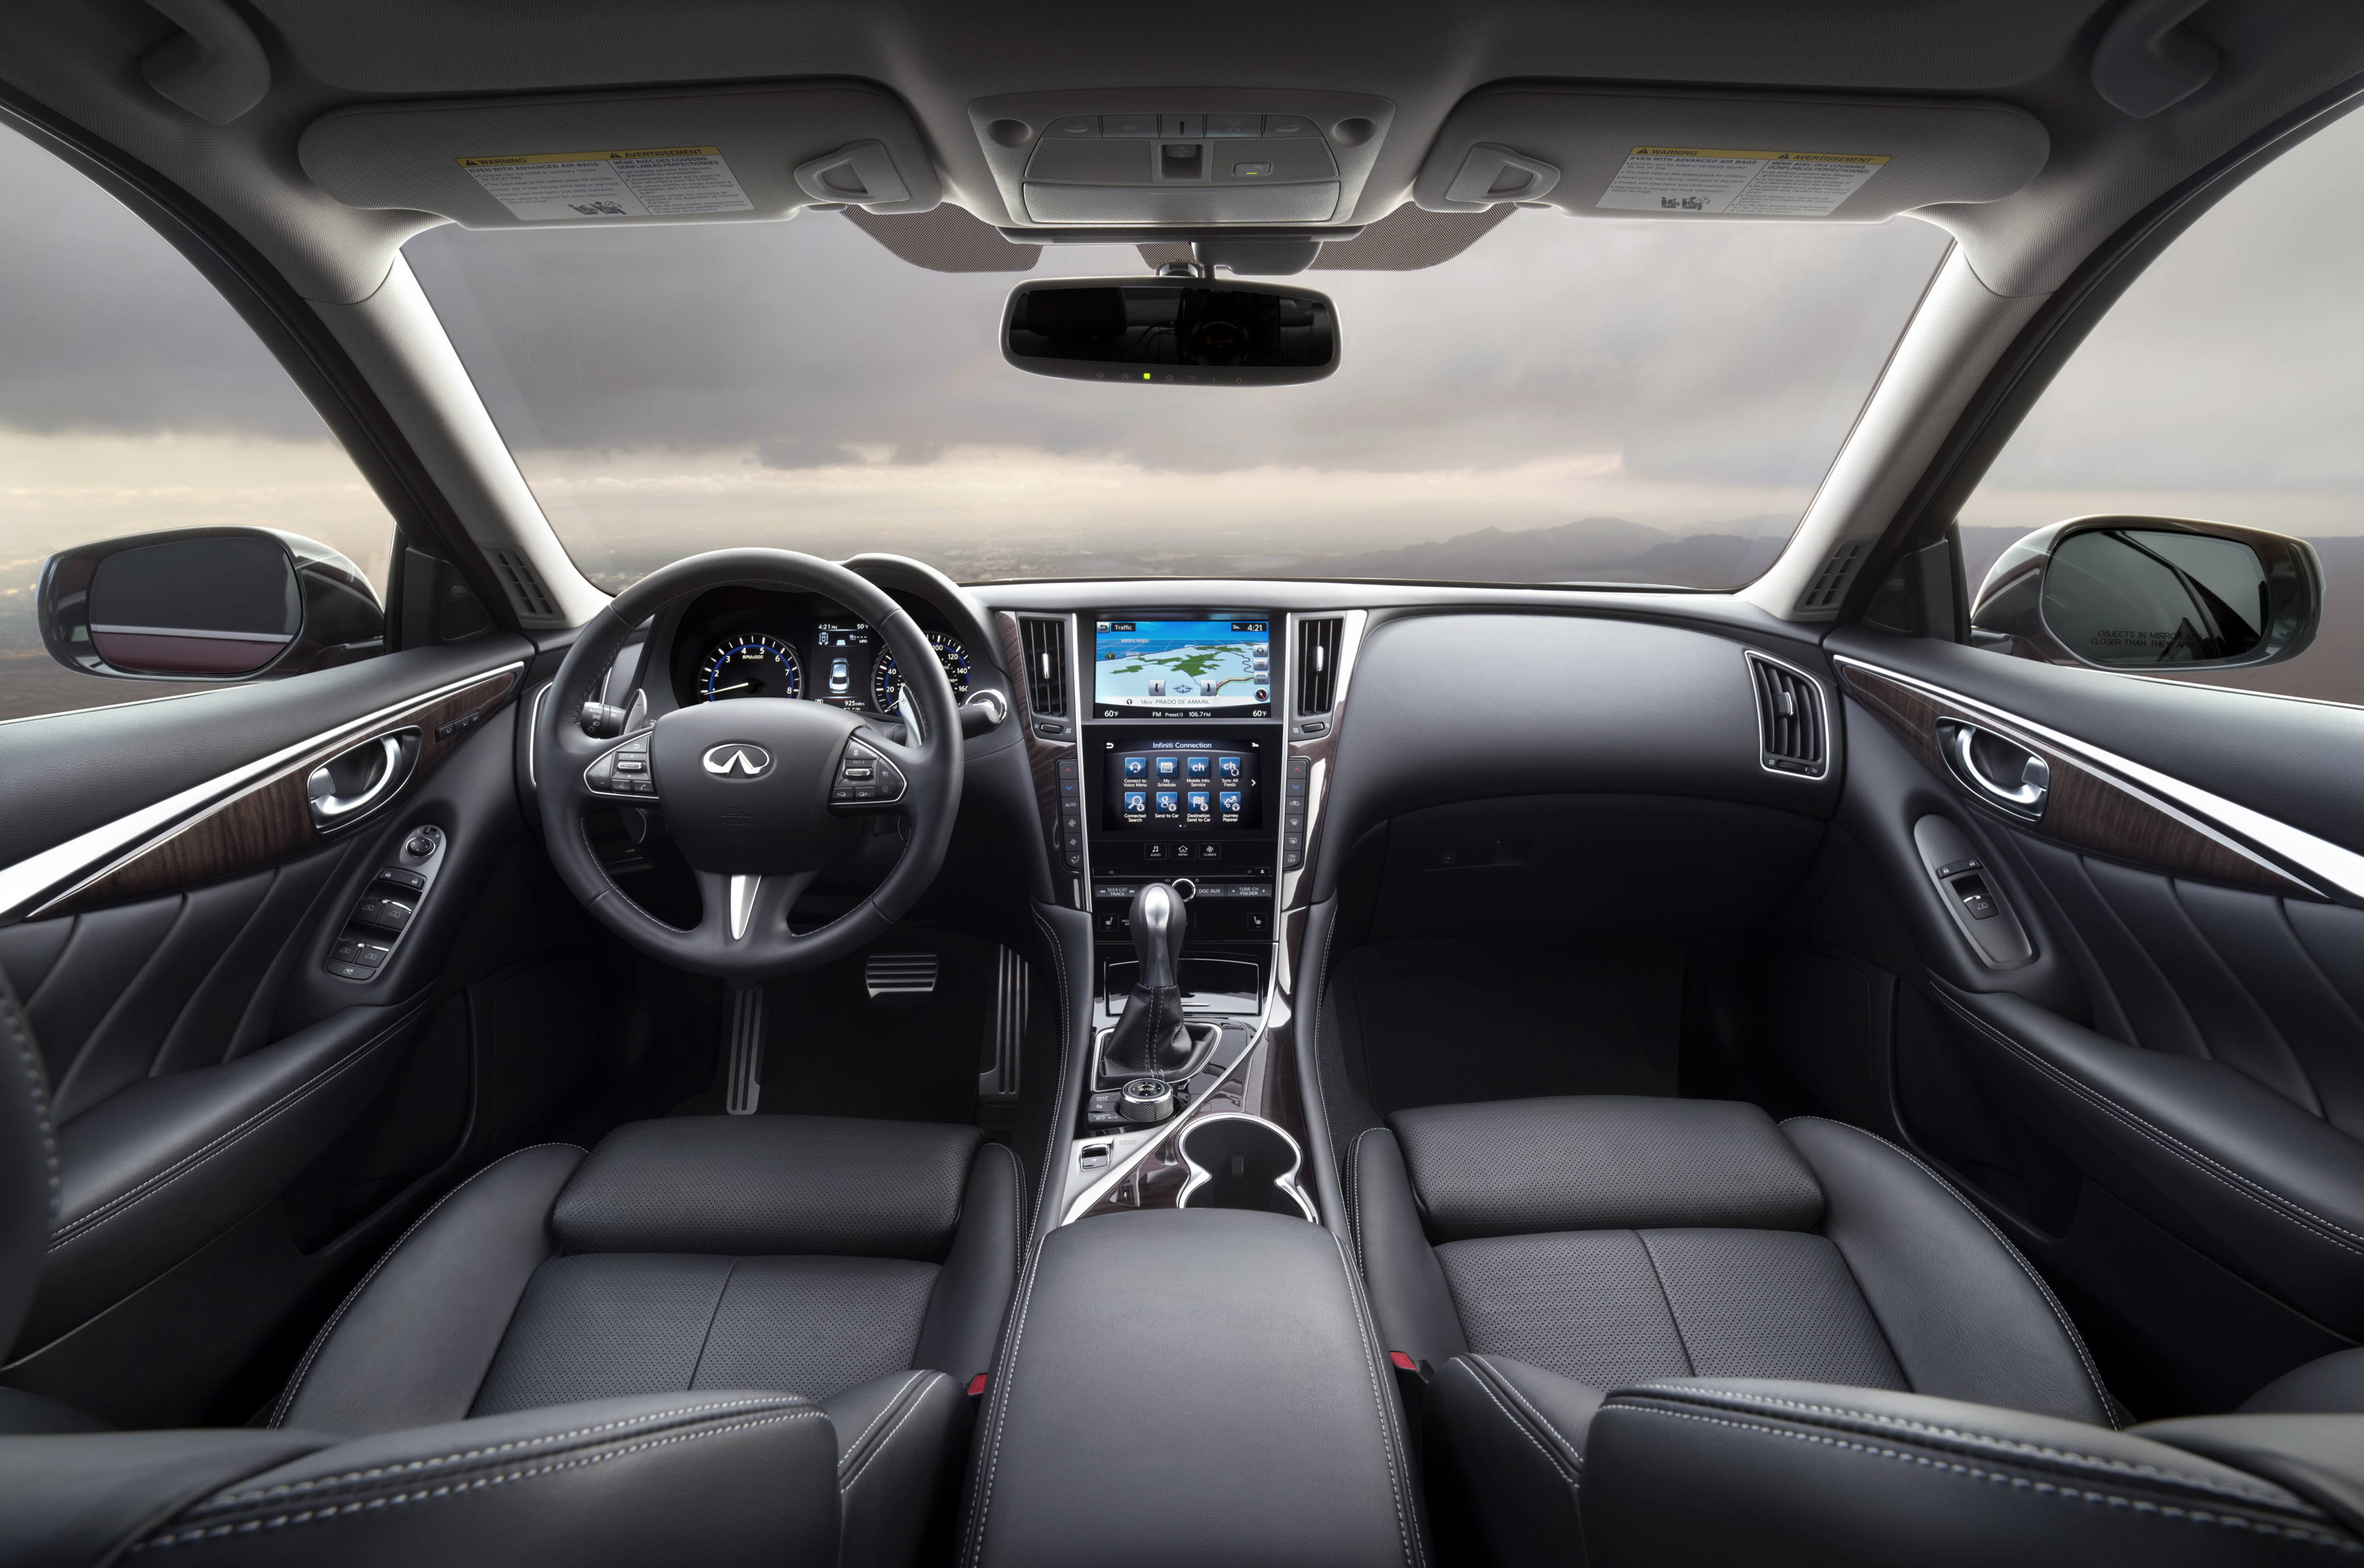 infiniti q50 coupe. and u201cadditional details will be available closer to when the 2016 qx60 arrives in infiniti showrooms late winteru201d q50 coupe r